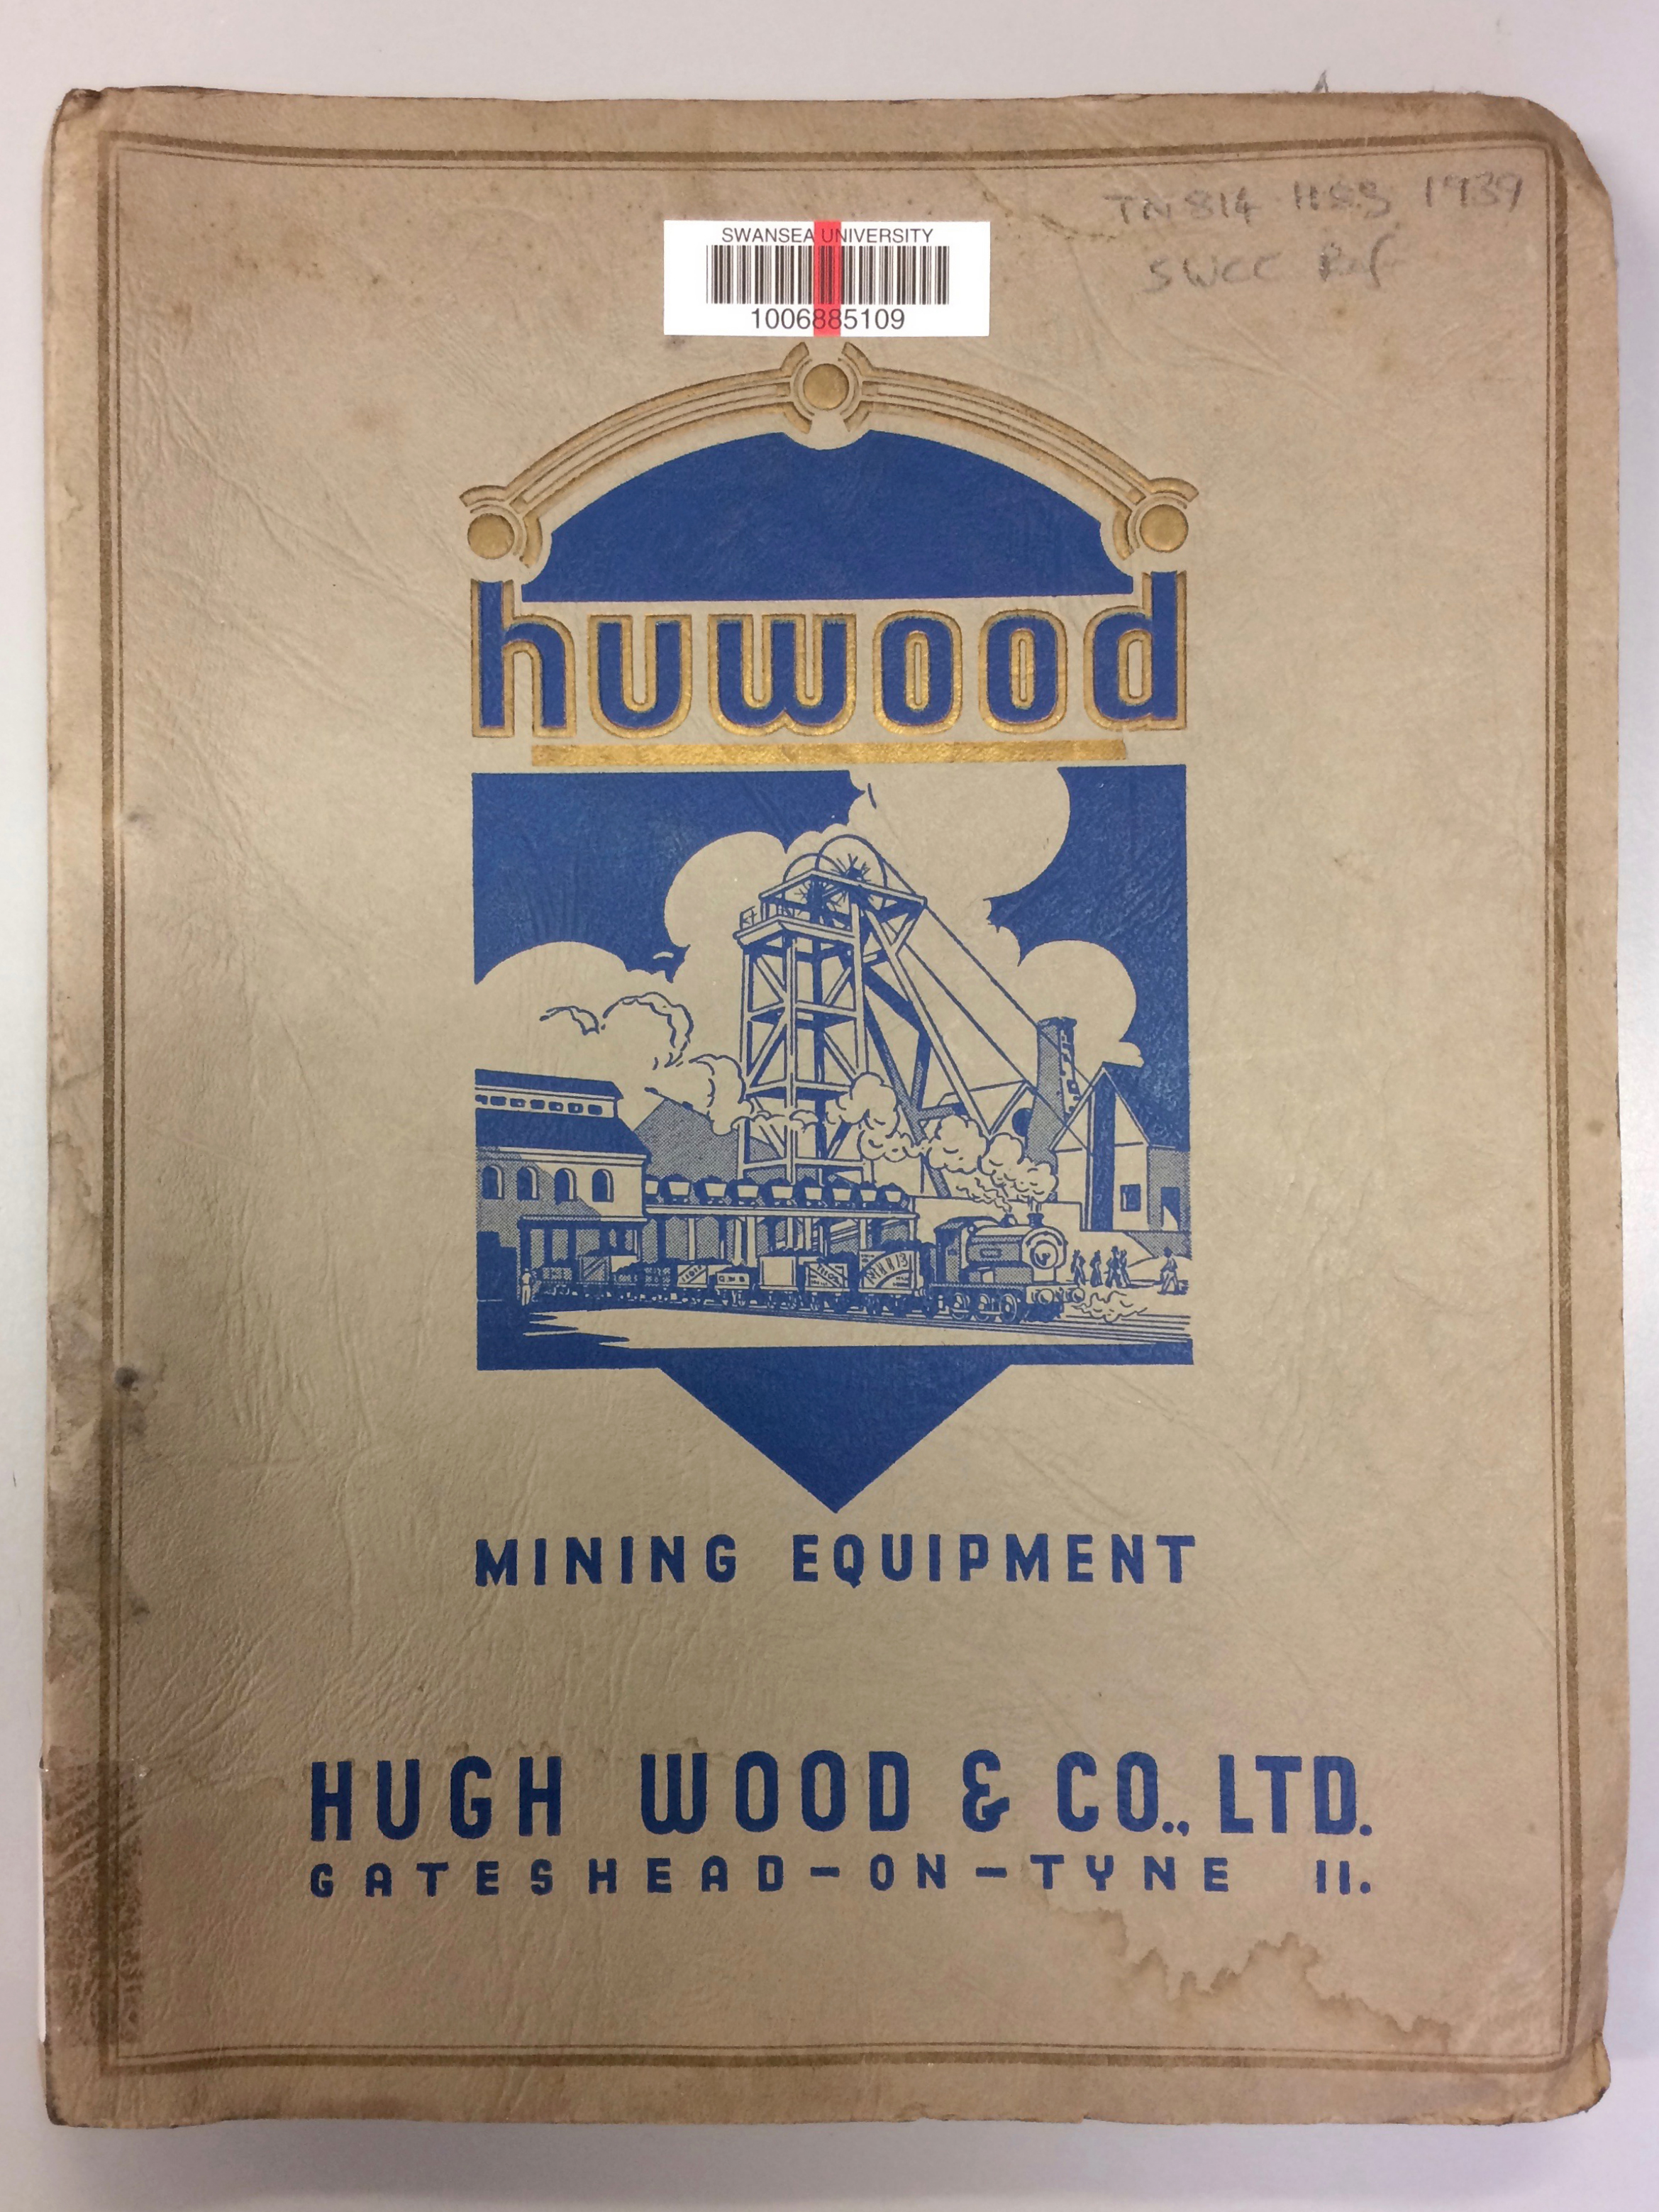 © South Wales Miners' Library  The catalogue containing information about Huwood's mining equipment, from the South Wales Miners' Library